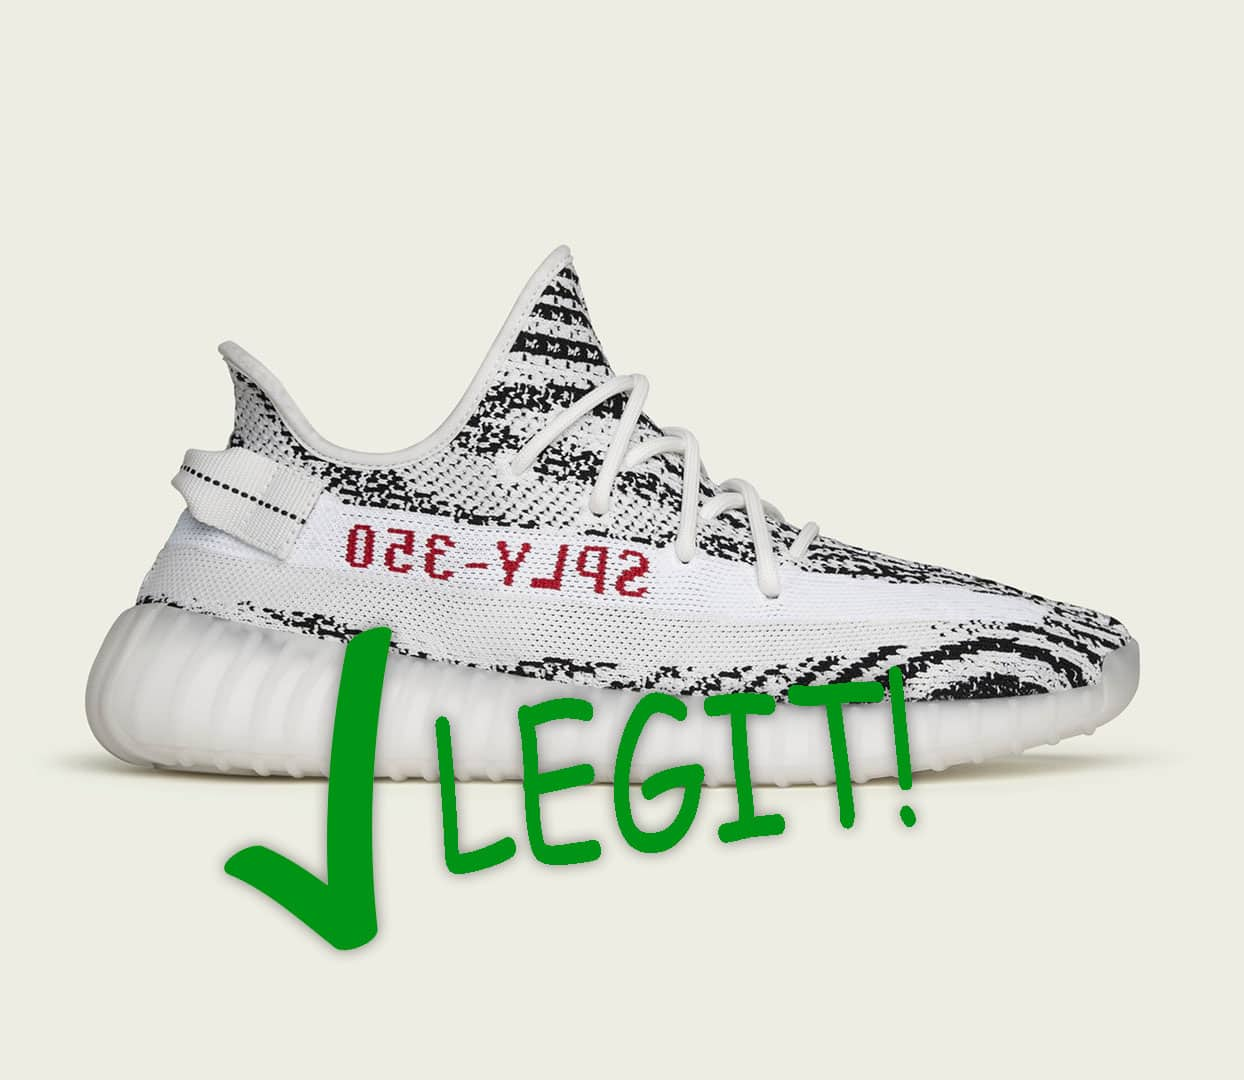 Yeezy or Feezy? How to Spot Fake Yeezy Boost 350 – Adidas Yeezy Boost 350